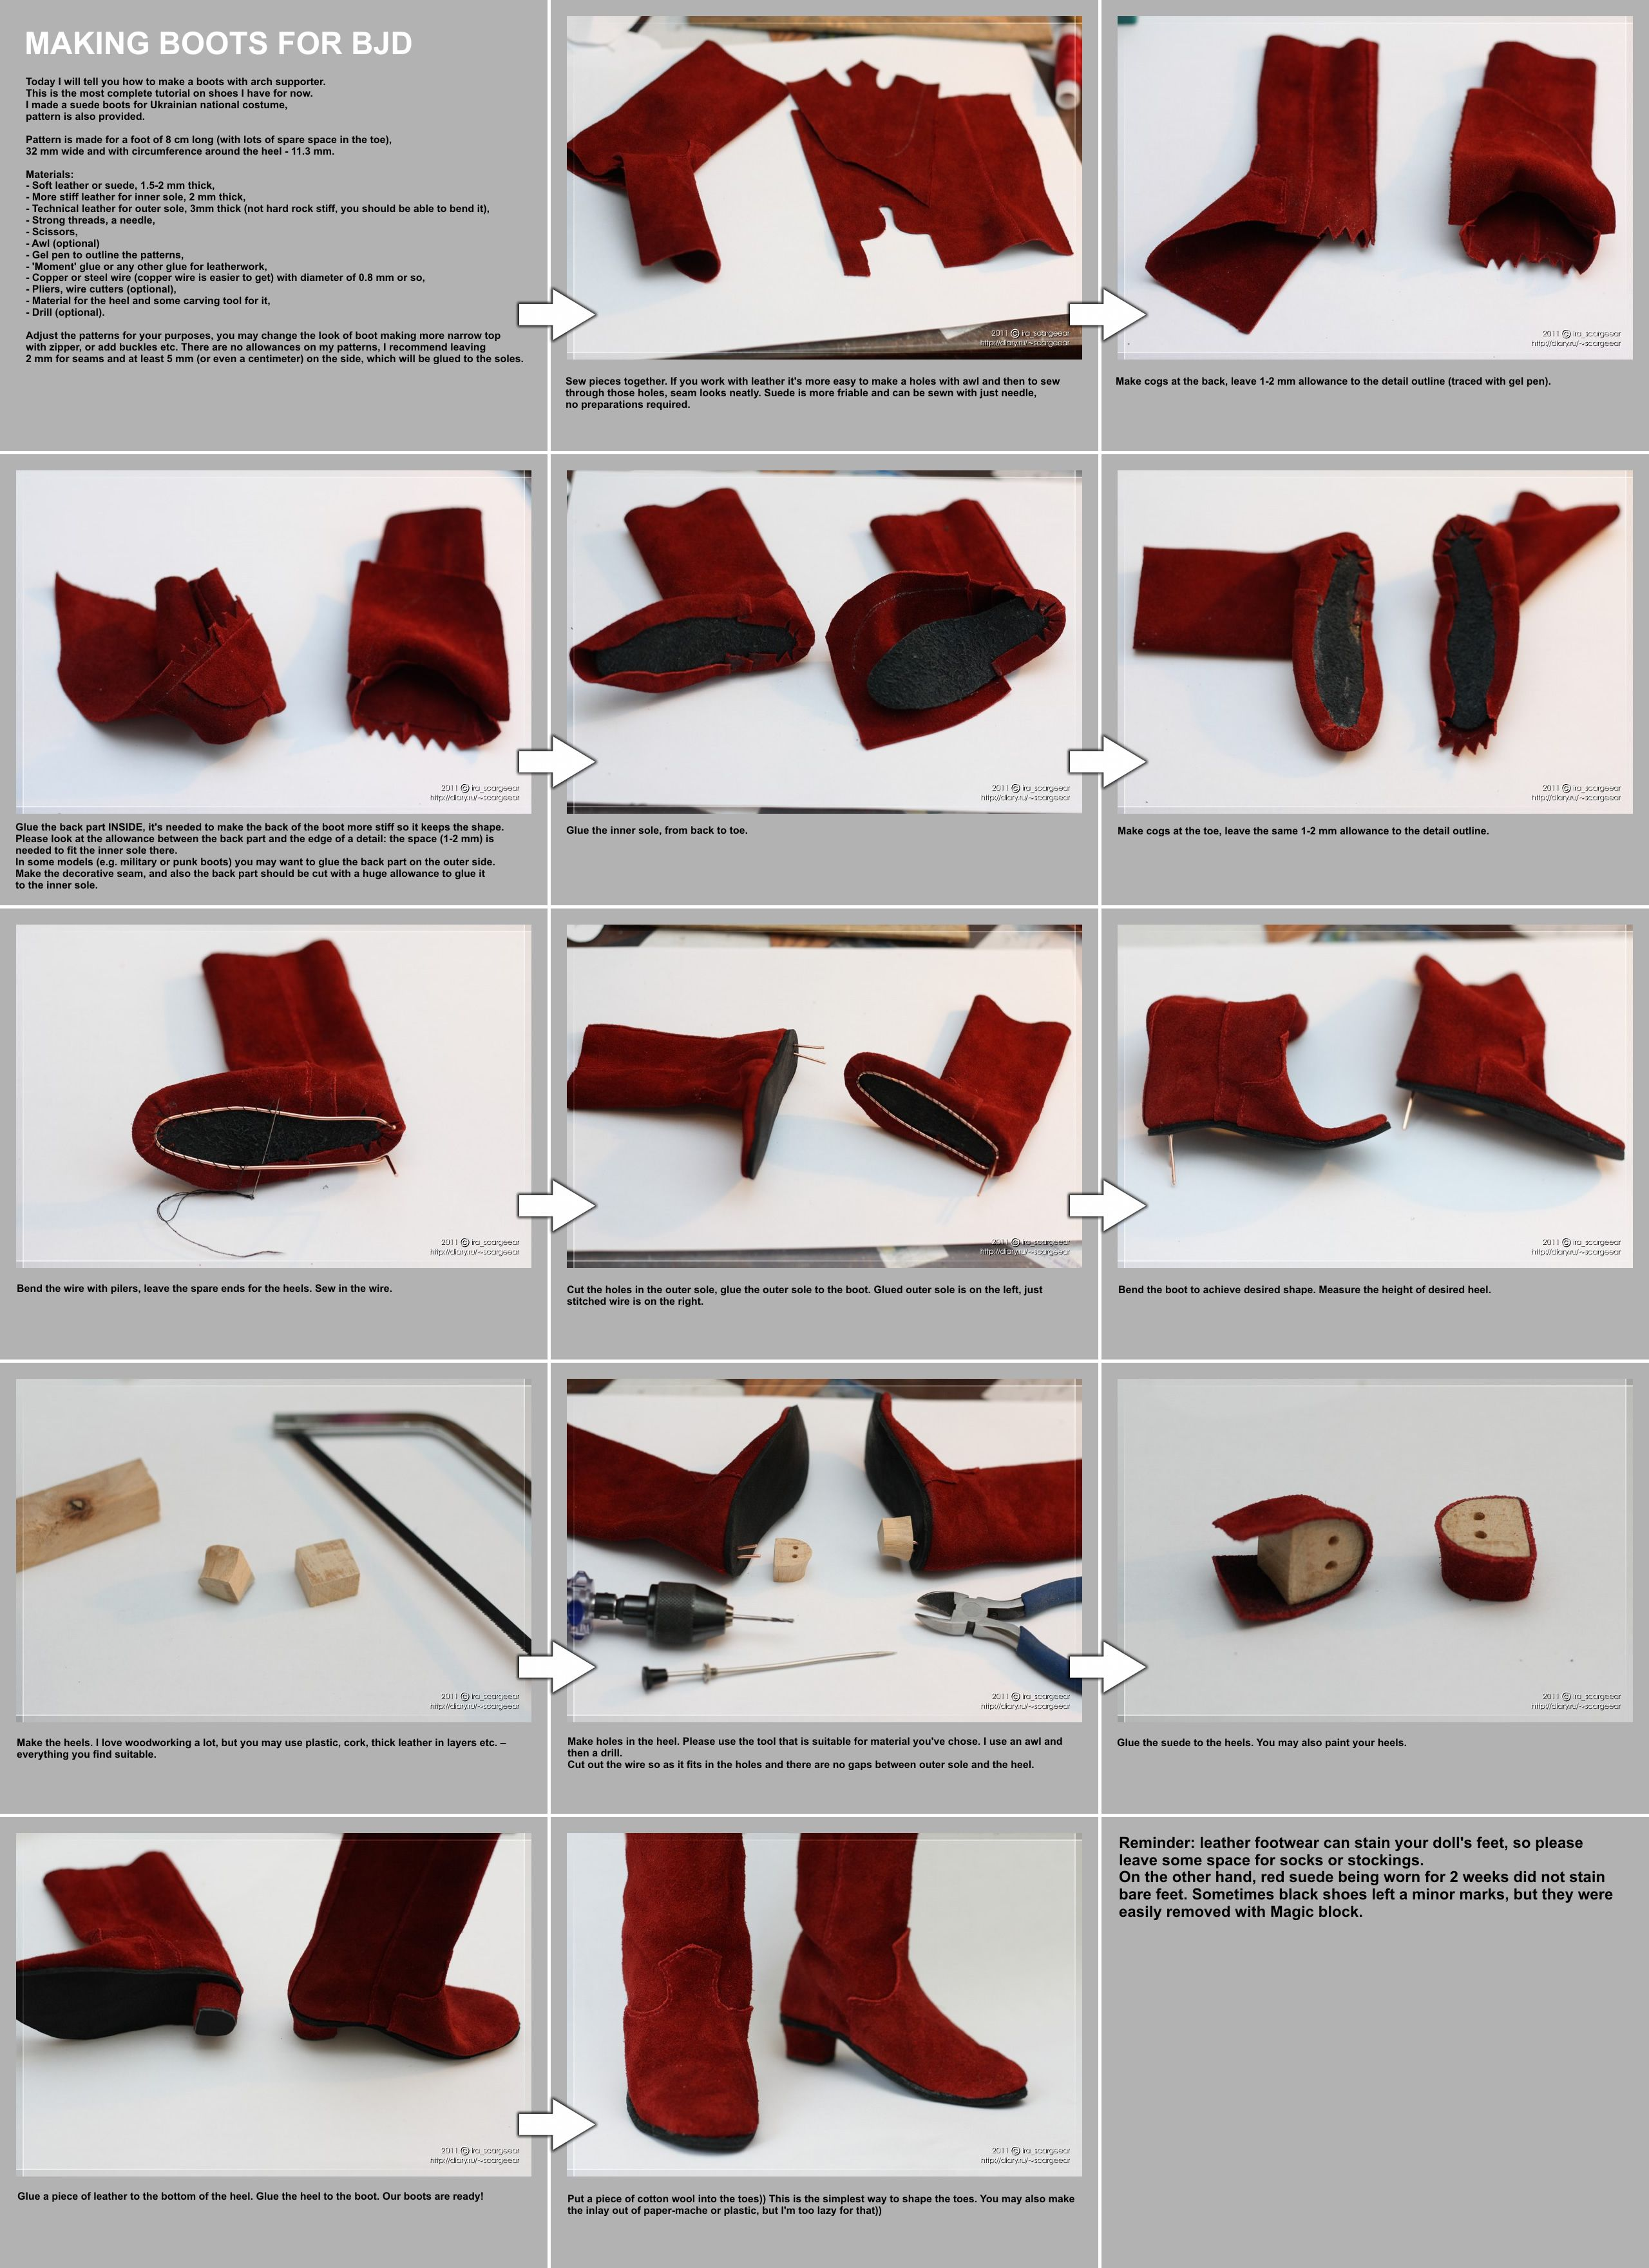 Very excellent tutorial about making boots for a doll .